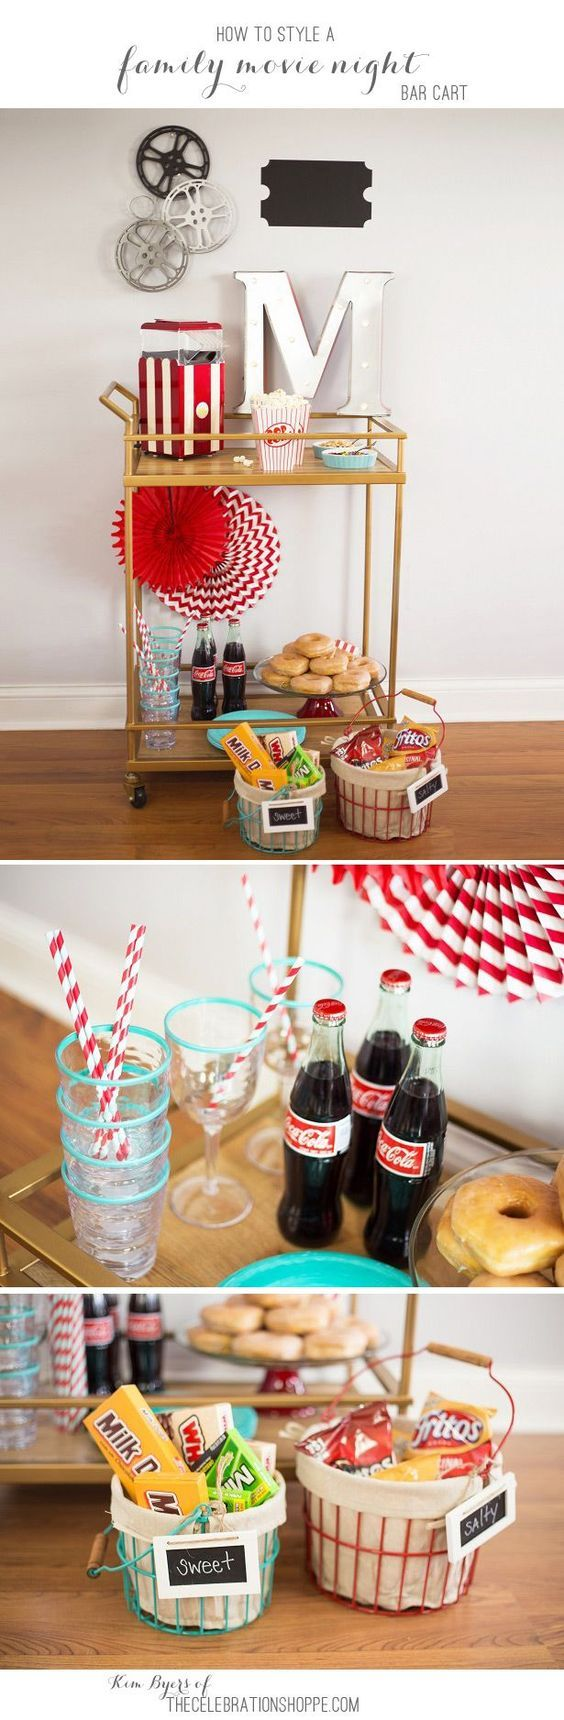 Weekly Family Movie Night & How To Style A Bar Cart